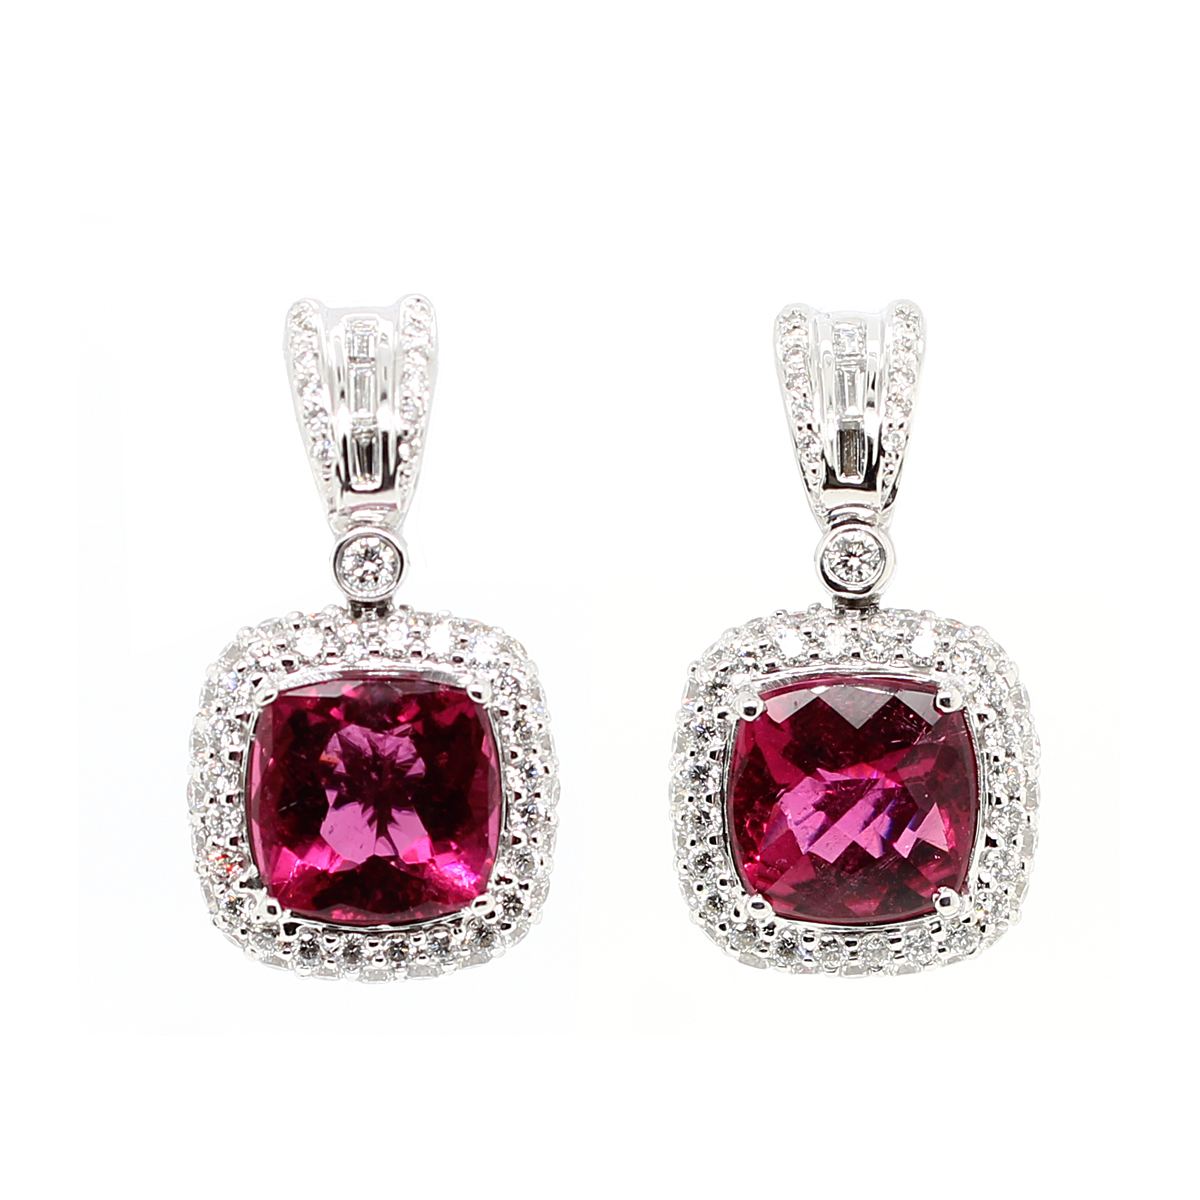 Charles Krypell 18 Karat White Gold Rubellite and Diamond Earrings